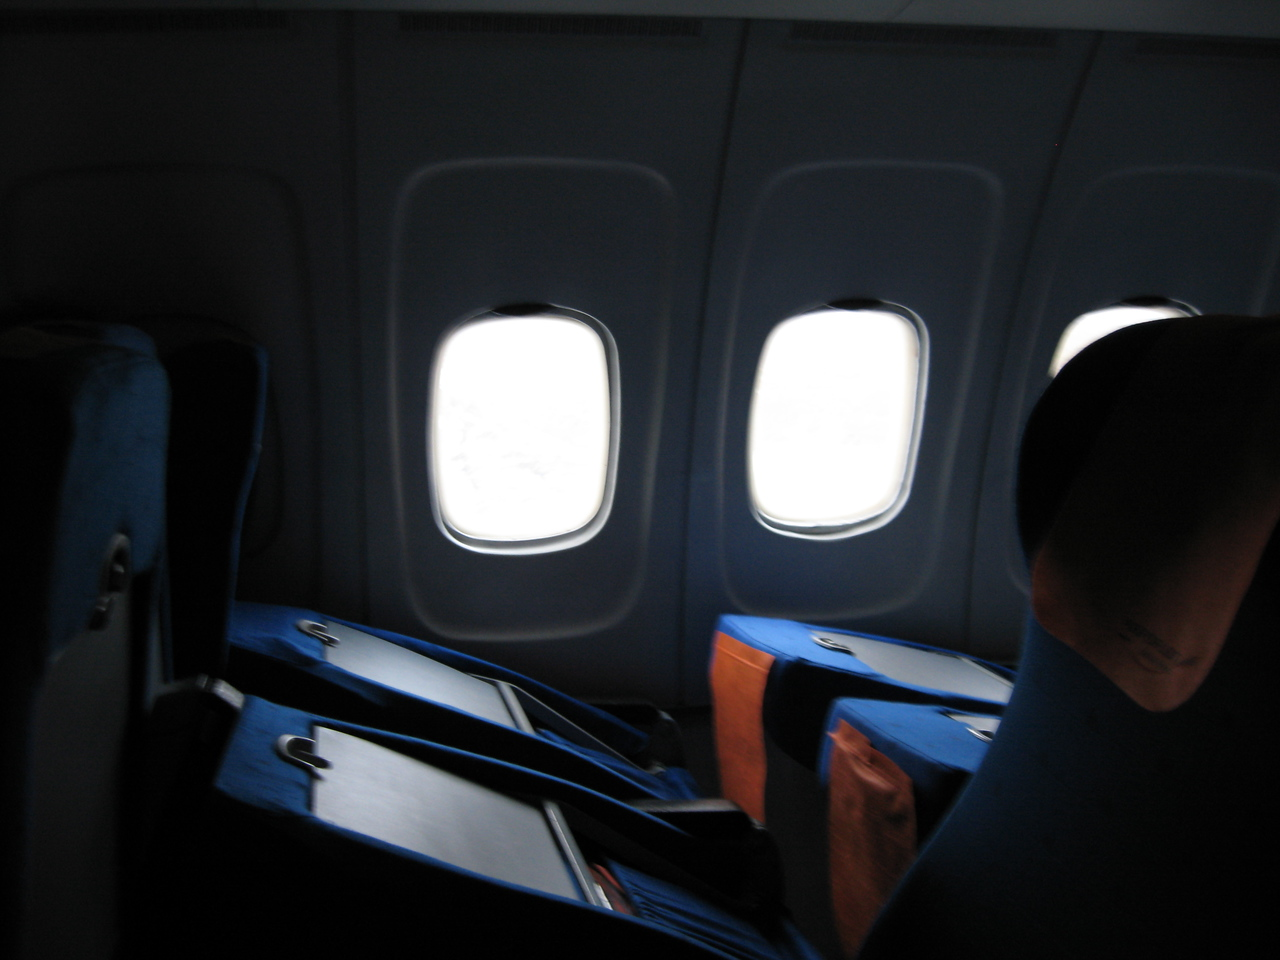 Apparently they've got this new braking system on the TU-154s - all the seats slam forward upon landing.  I actually was zonked out and had the Zune MP3 player cranked - I had no idea we were landing until we landed and the pilot stomped on the brakes.